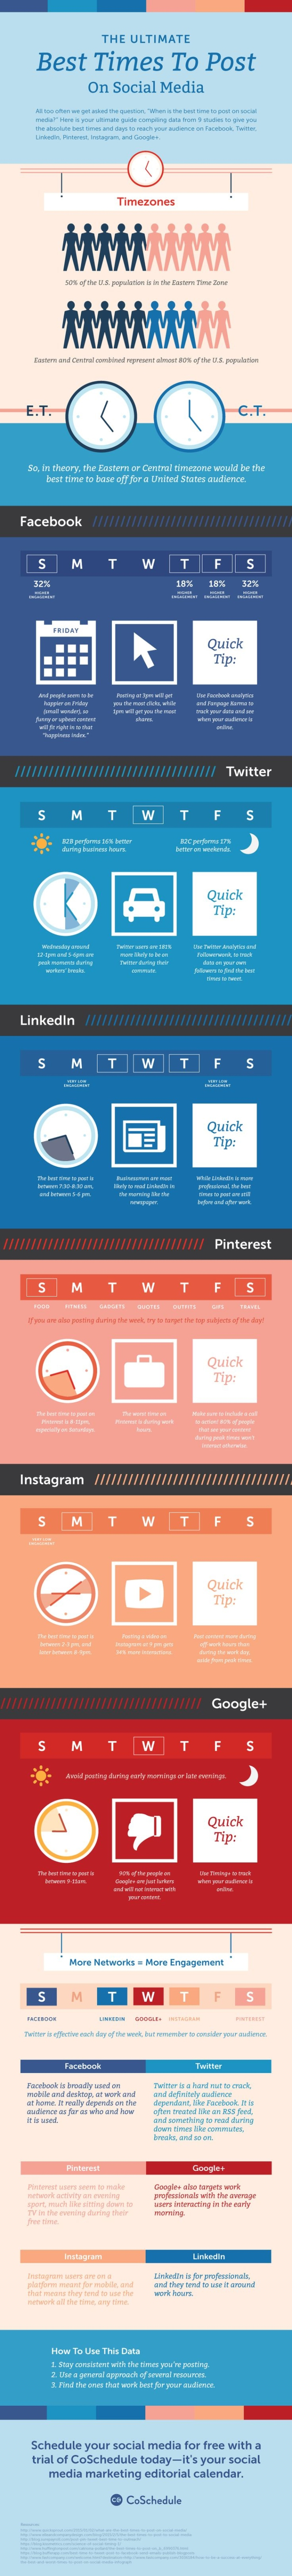 what-10-studies-say-about-the-best-times-to-post-on-social-media